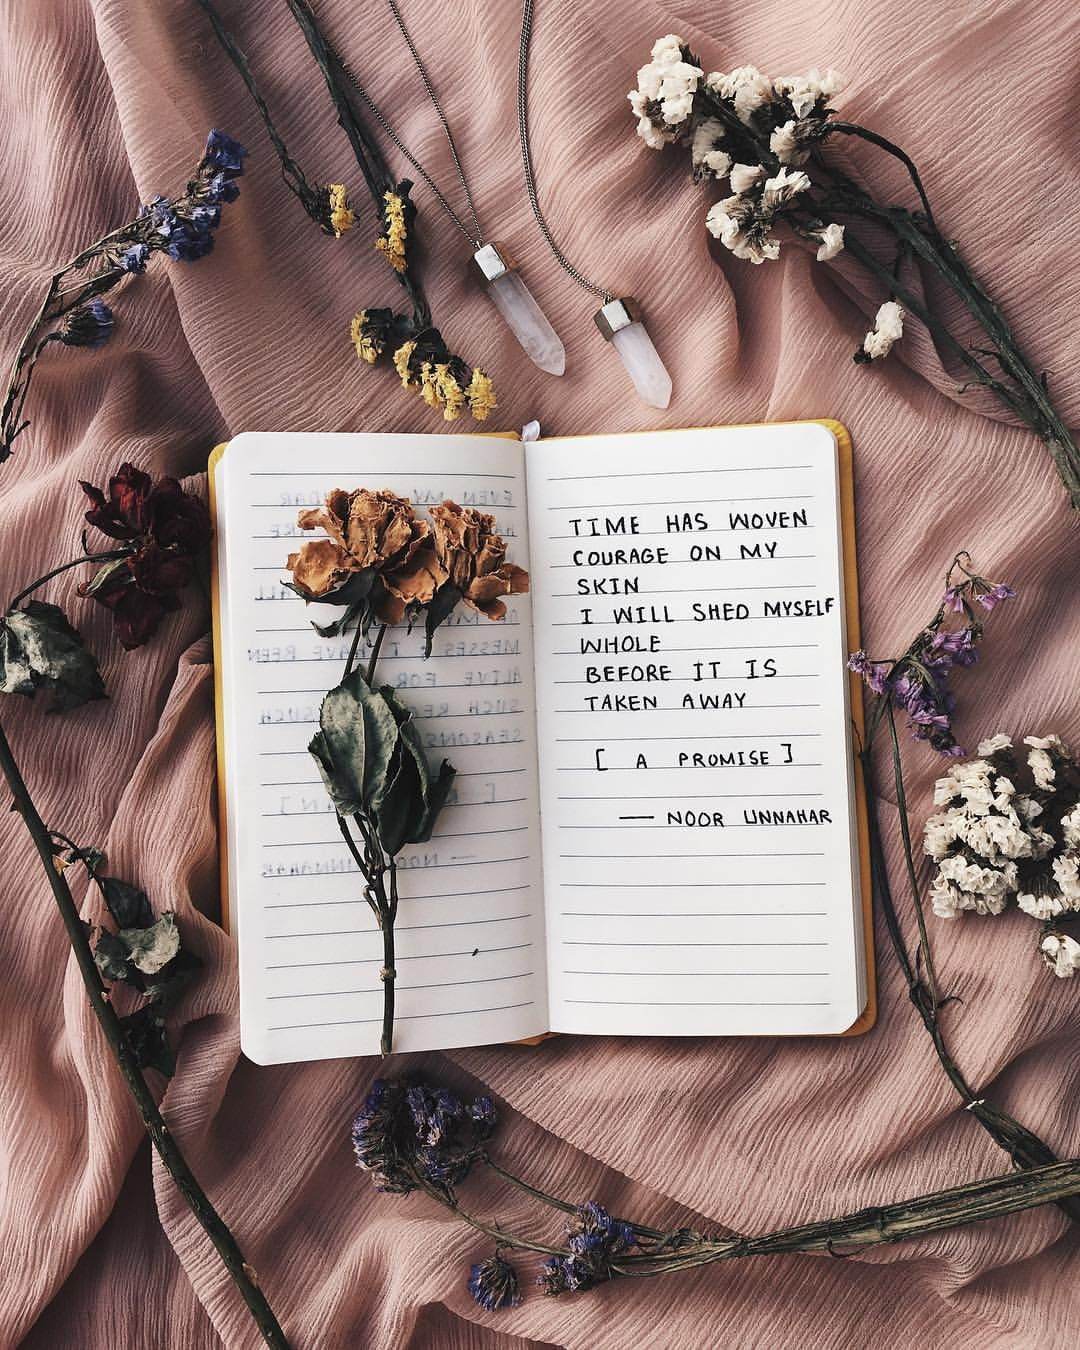 art journal journaling ideas inspiration, tumblr hipsters aesthetics pale grunge indie floral aesthetic dry flowers flatlay creative instagram photography diy craft, words quotes poetic artsy writing writers of color pakistani artist, beige notebook stationery  is part of Aesthetic photo -